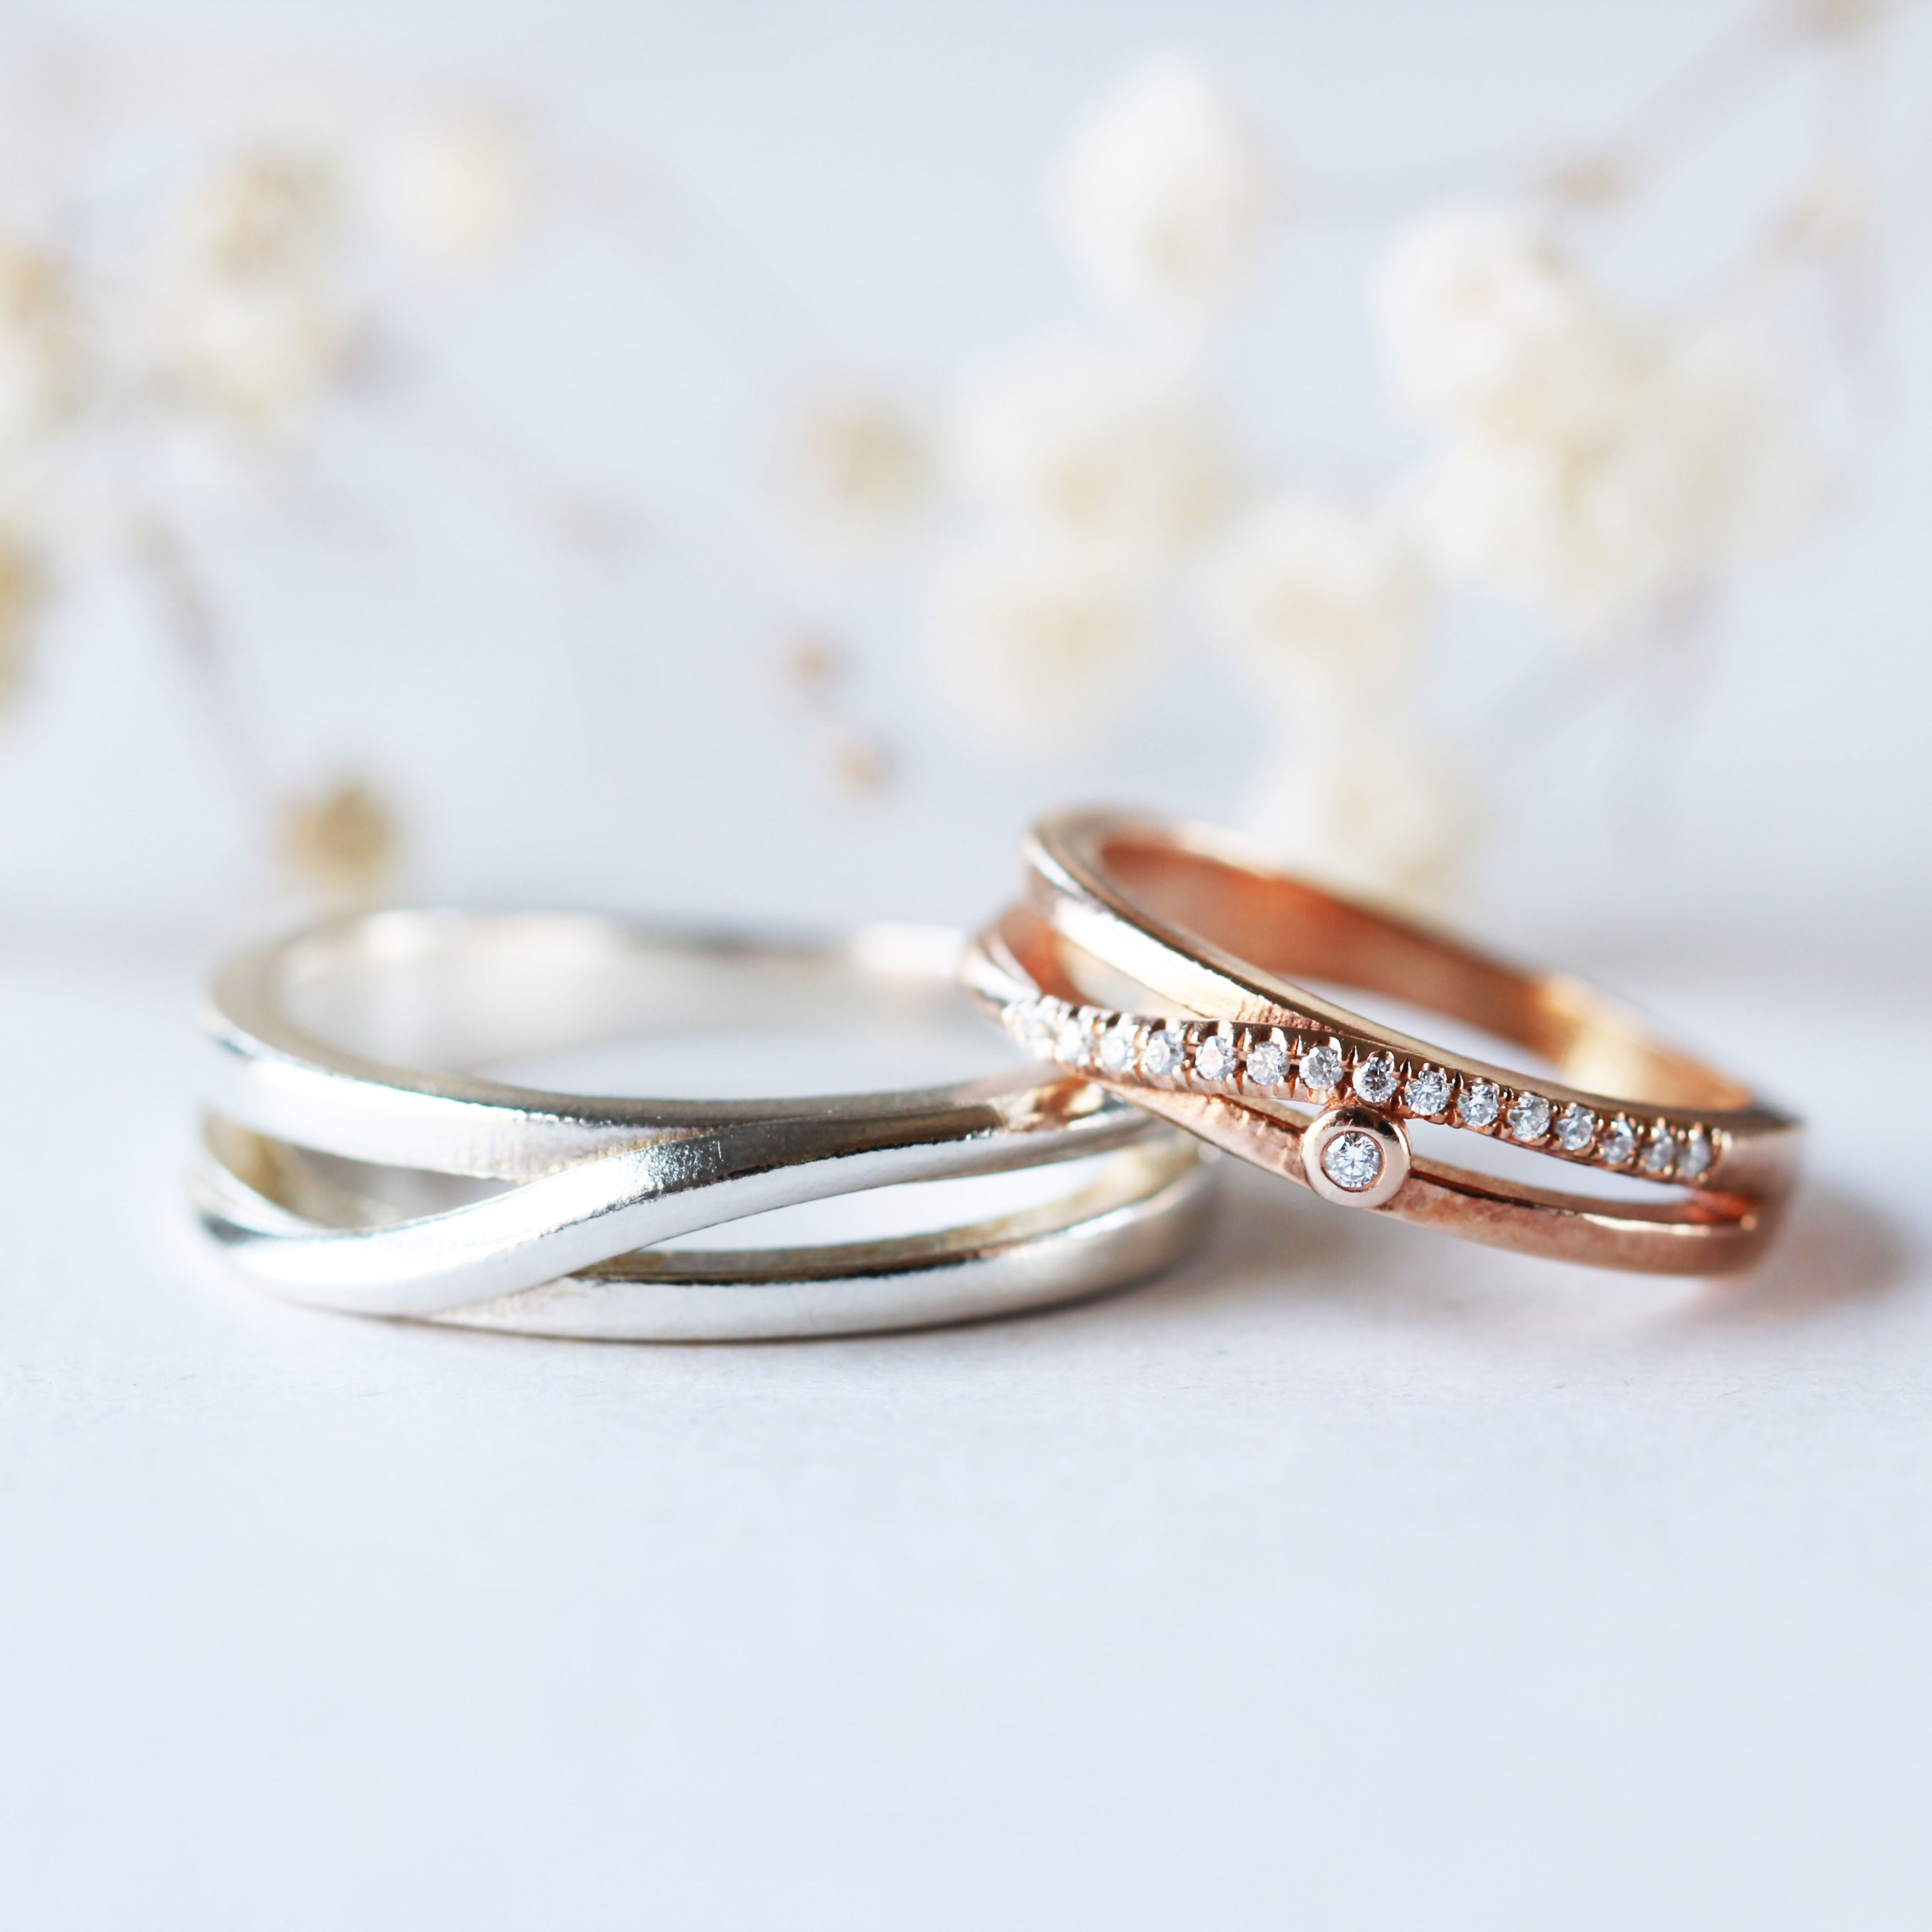 It is just a graphic of His and Hers Couple Rings His and Hers wedding Rings Rose gold